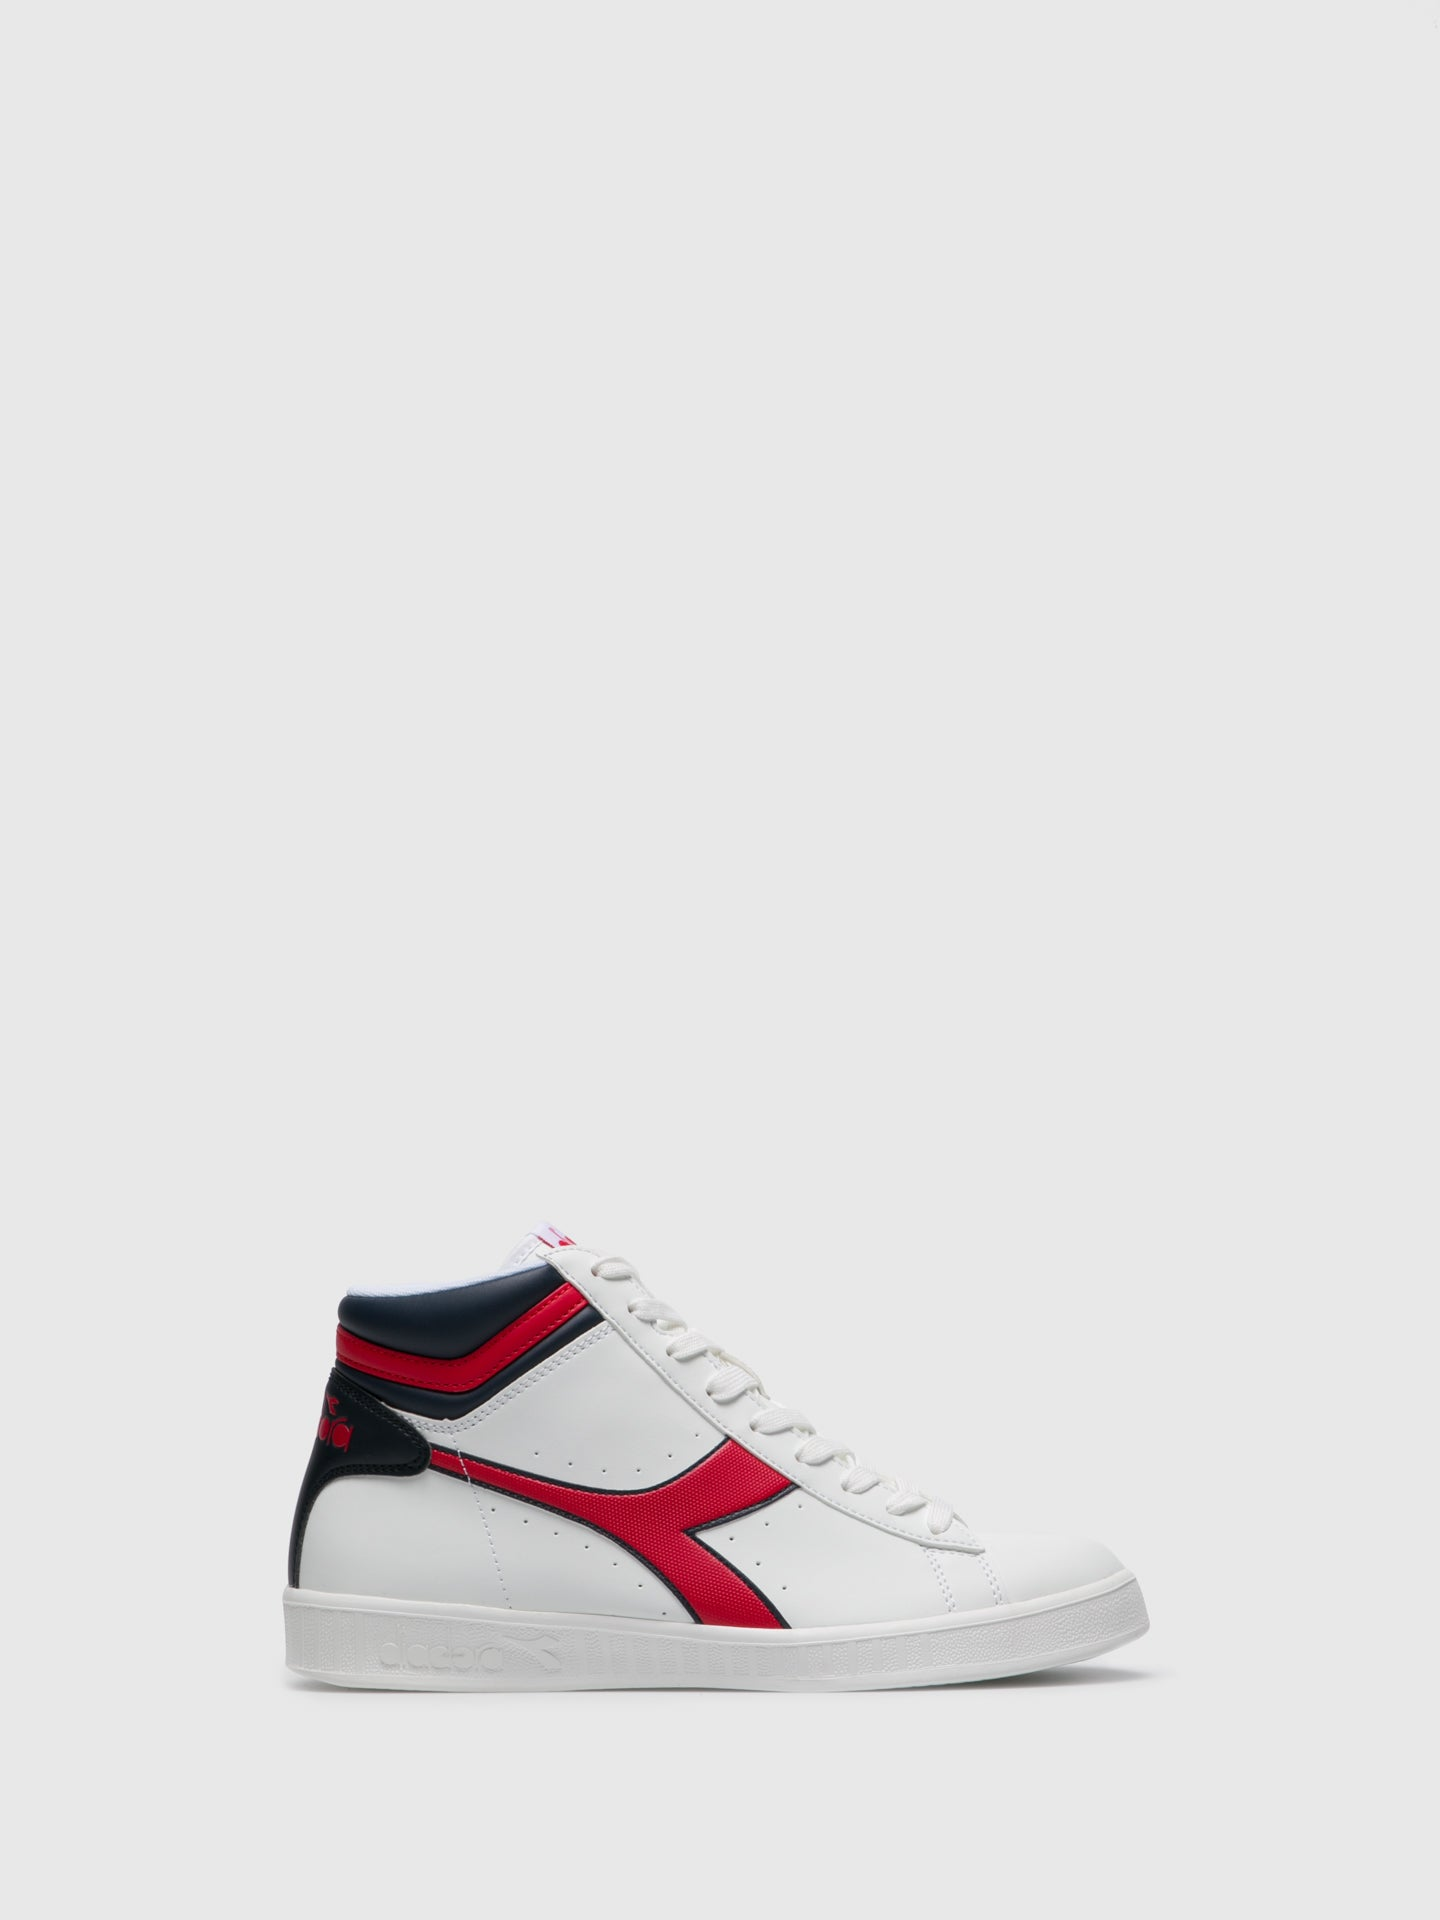 Diadora Red White Hi-Top Trainers